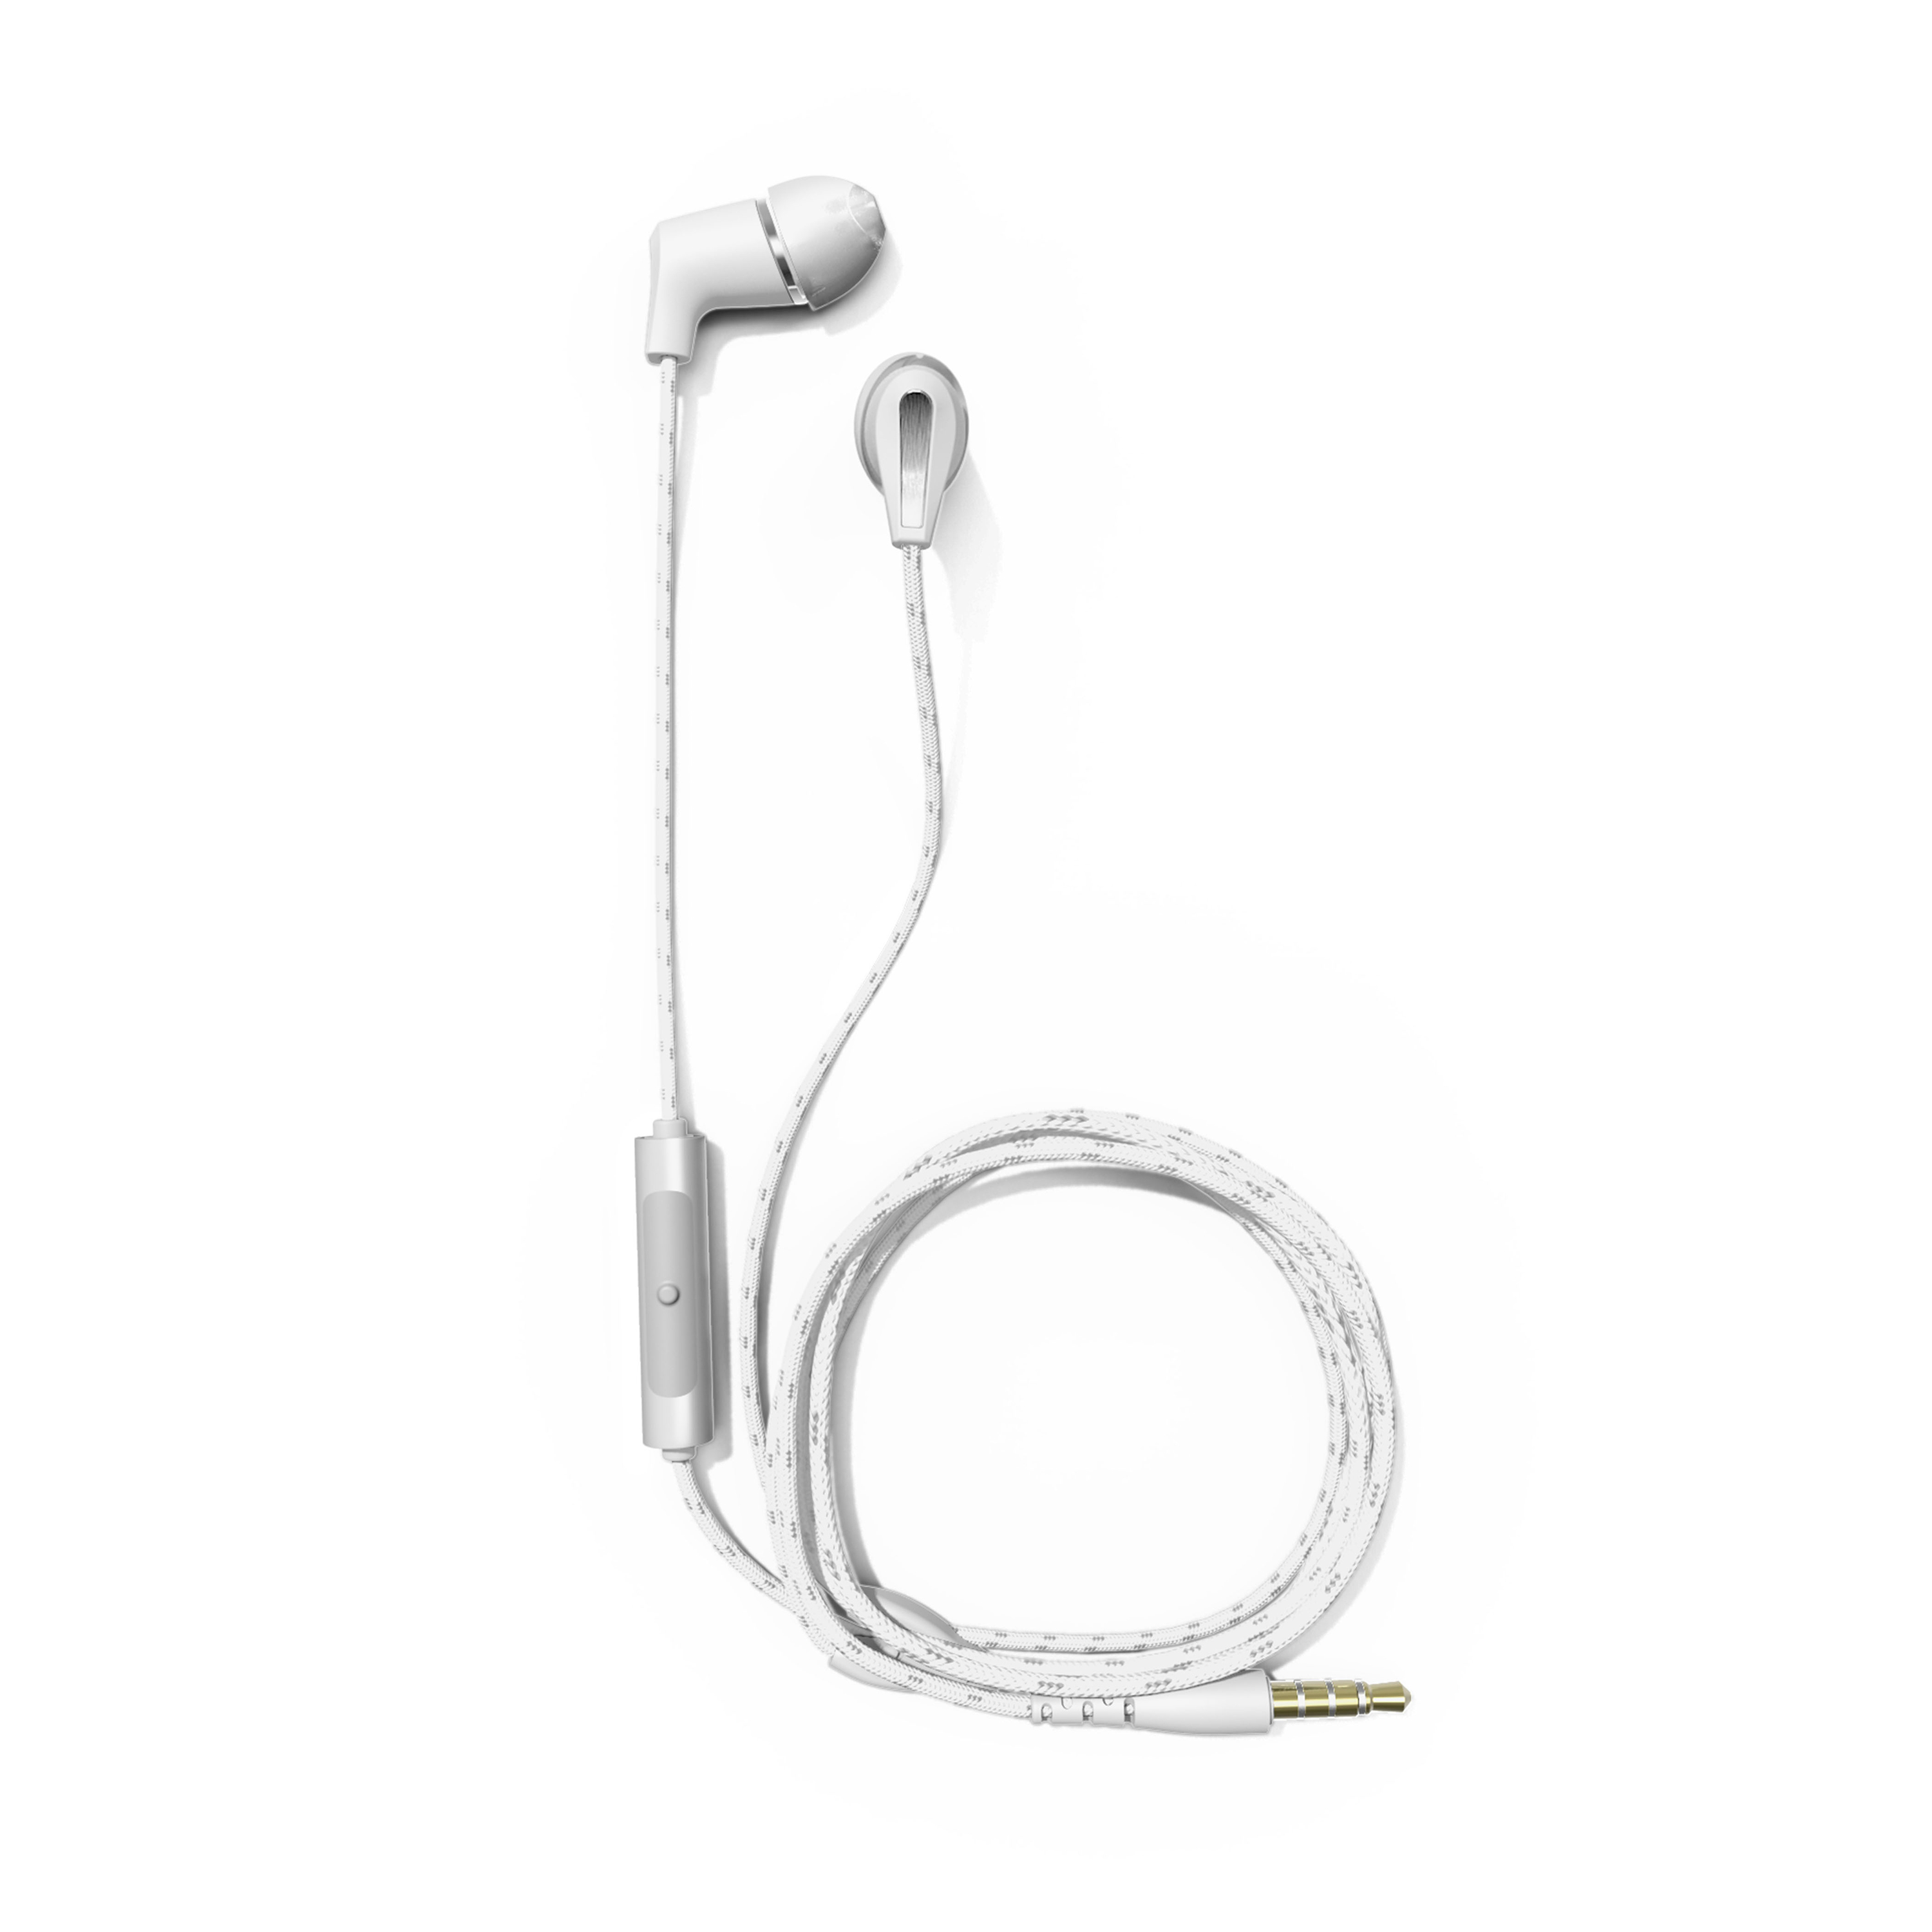 KLIPSCH T5M WIRED EARPHONES WHITE